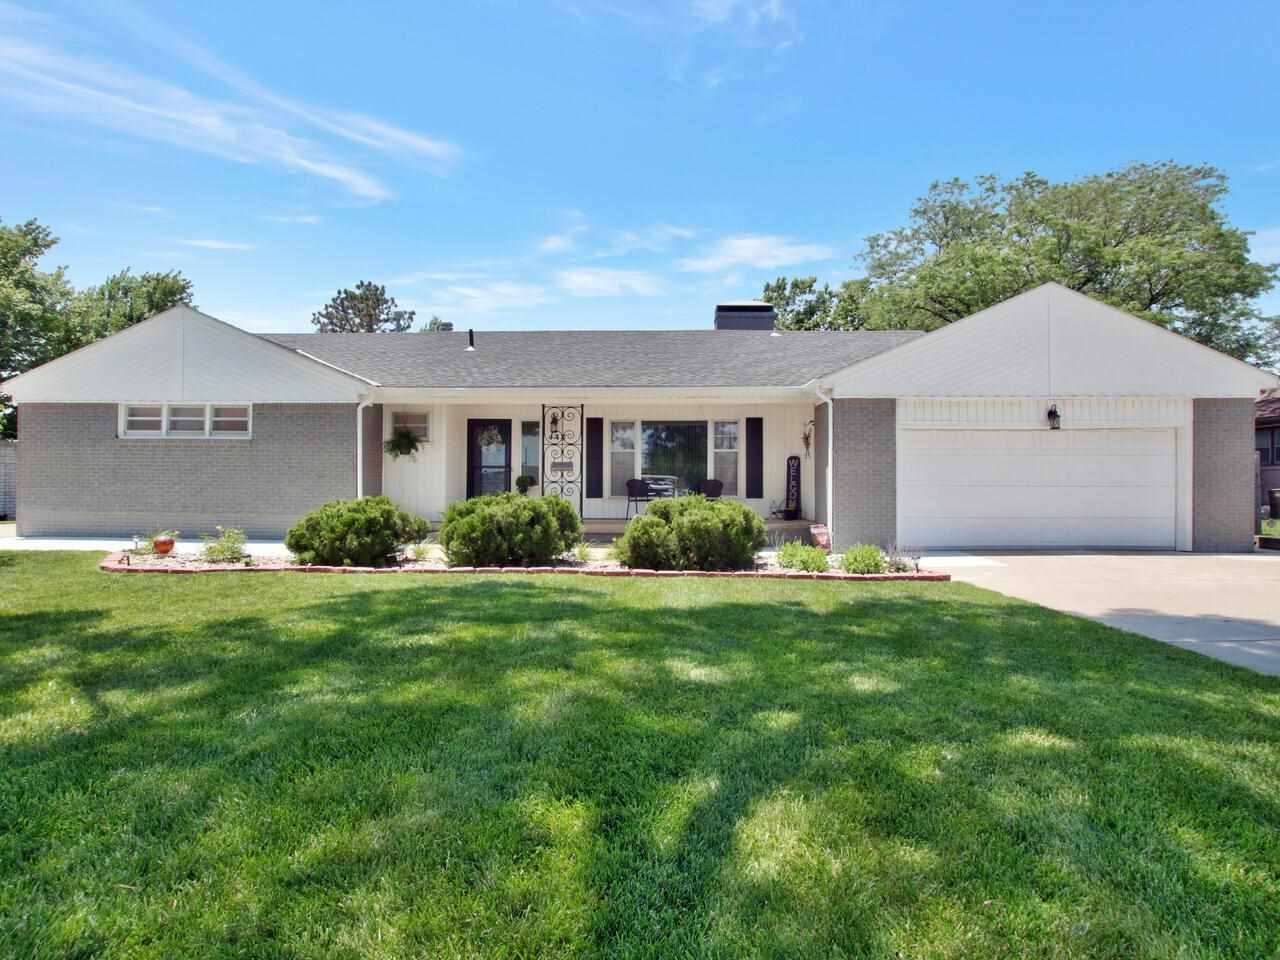 Welcome to 447 S. Windsor. This magnificent 3 bedroom, 3 bath, sprawling ranch style home is nestled